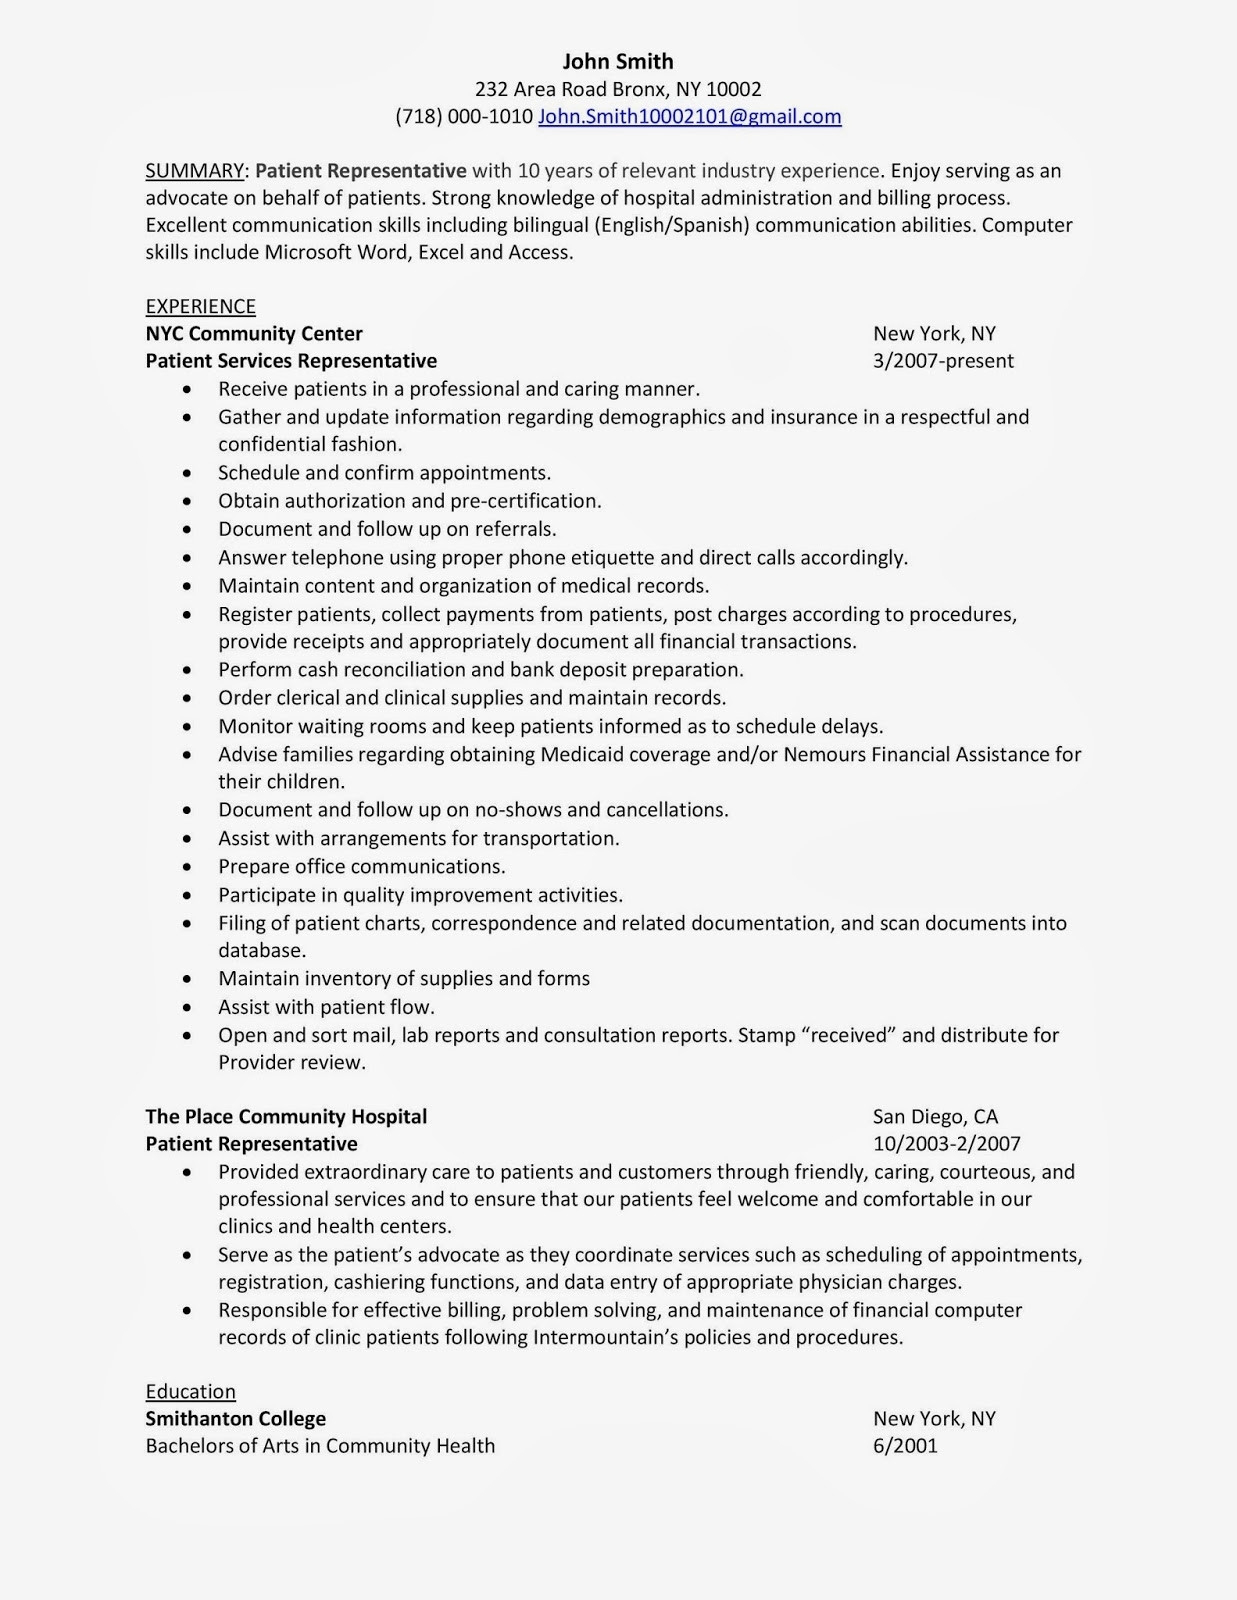 patient care representative resume example-Patient Service Representative Resume Recent Patient Service Representative Resume 1 Impressive 15-i